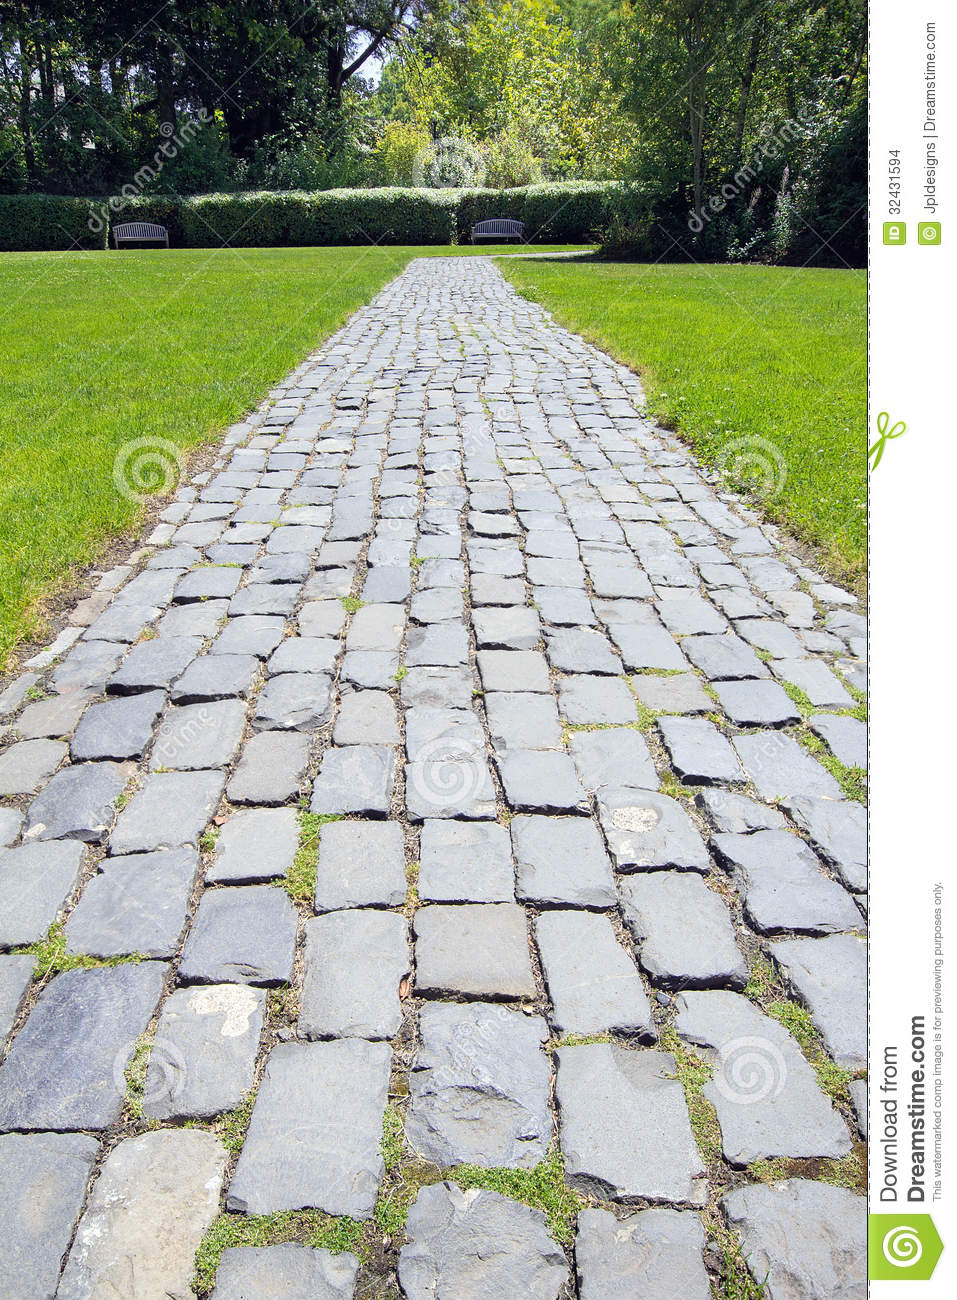 Garden Cobblestone Path Stock Images - Image: 32431594